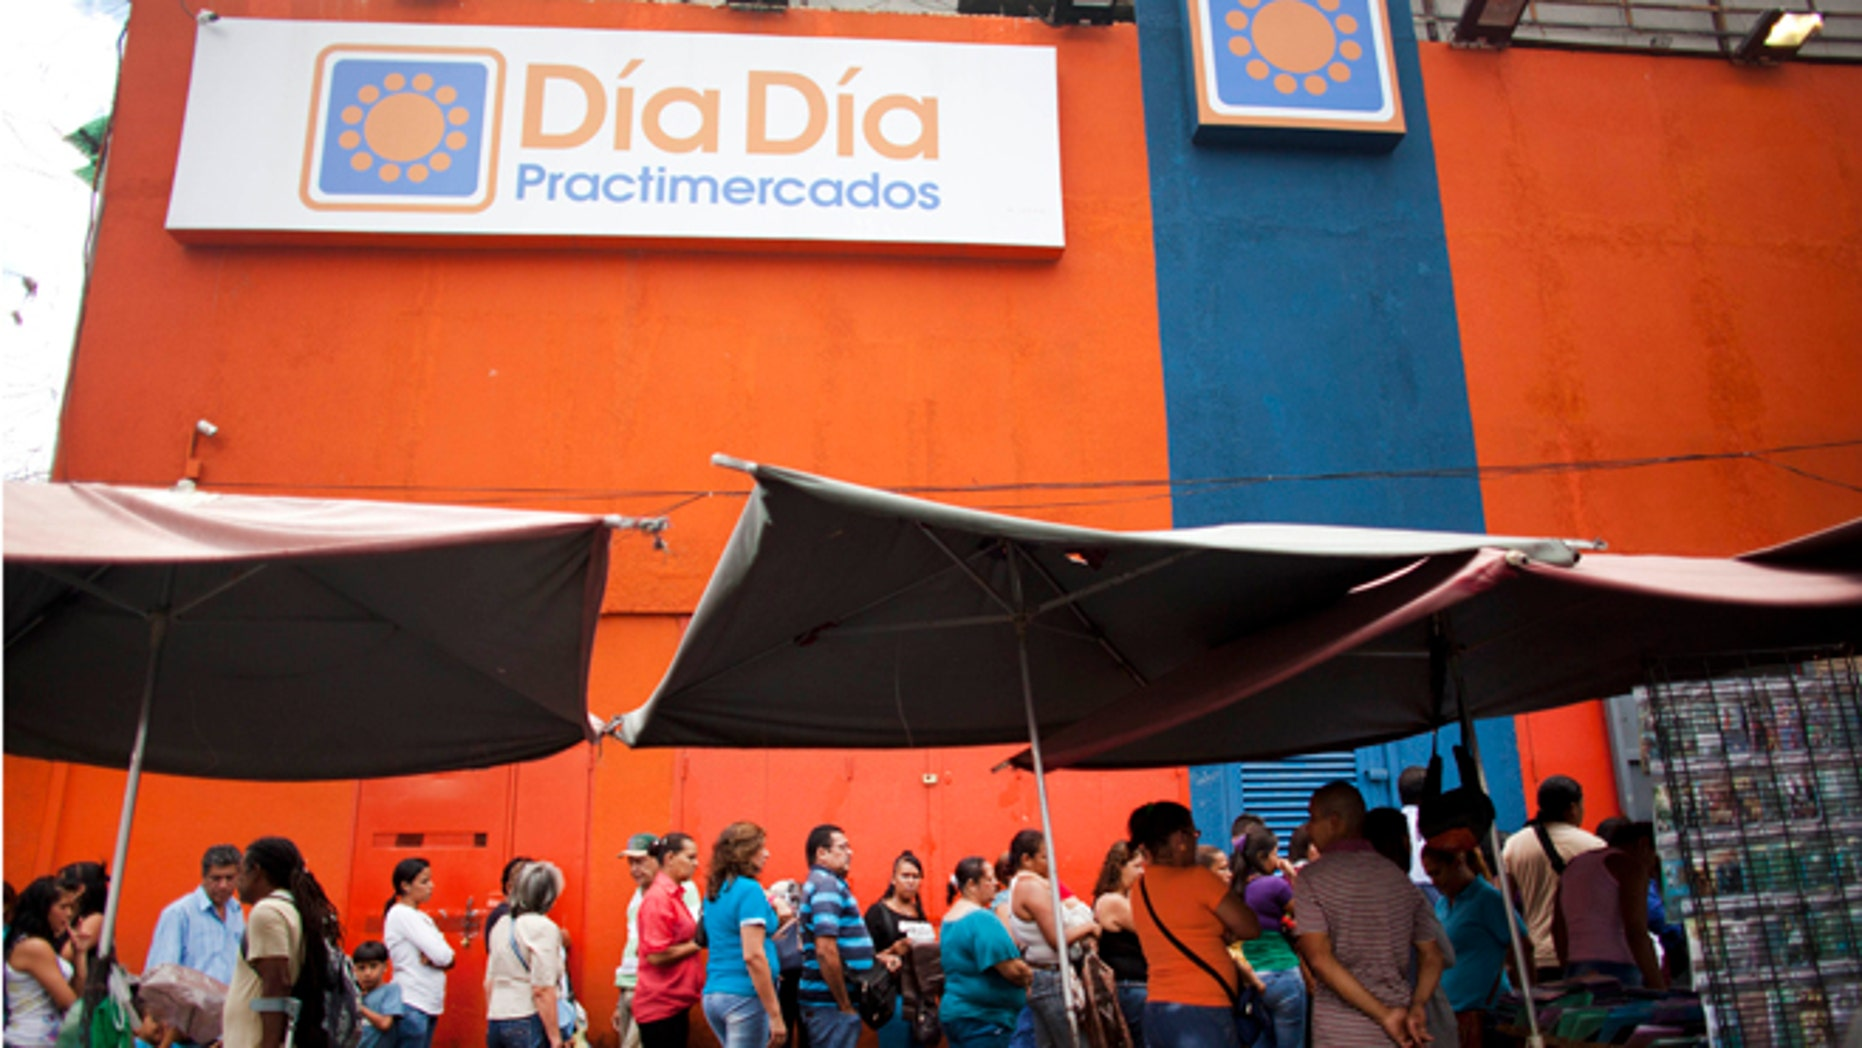 People line up outside the Dia a Dia supermarket after it was taken over by the government in the Propatria neighborhood of Caracas, Venezuela, Tuesday, Feb. 3, 2015. The government is temporarily taking over the Dia a Dia supermarket chain as part of a crackdown on private businesses it blames for worsening shortages and long lines. Popular items with government fixed prices that have been running short are coffee, cooking oil, precooked corn flour, sugar, milk, toilet paper, disposable diapers, detergent and fabric softener, among other items. (AP Photo/Ariana Cubillos)